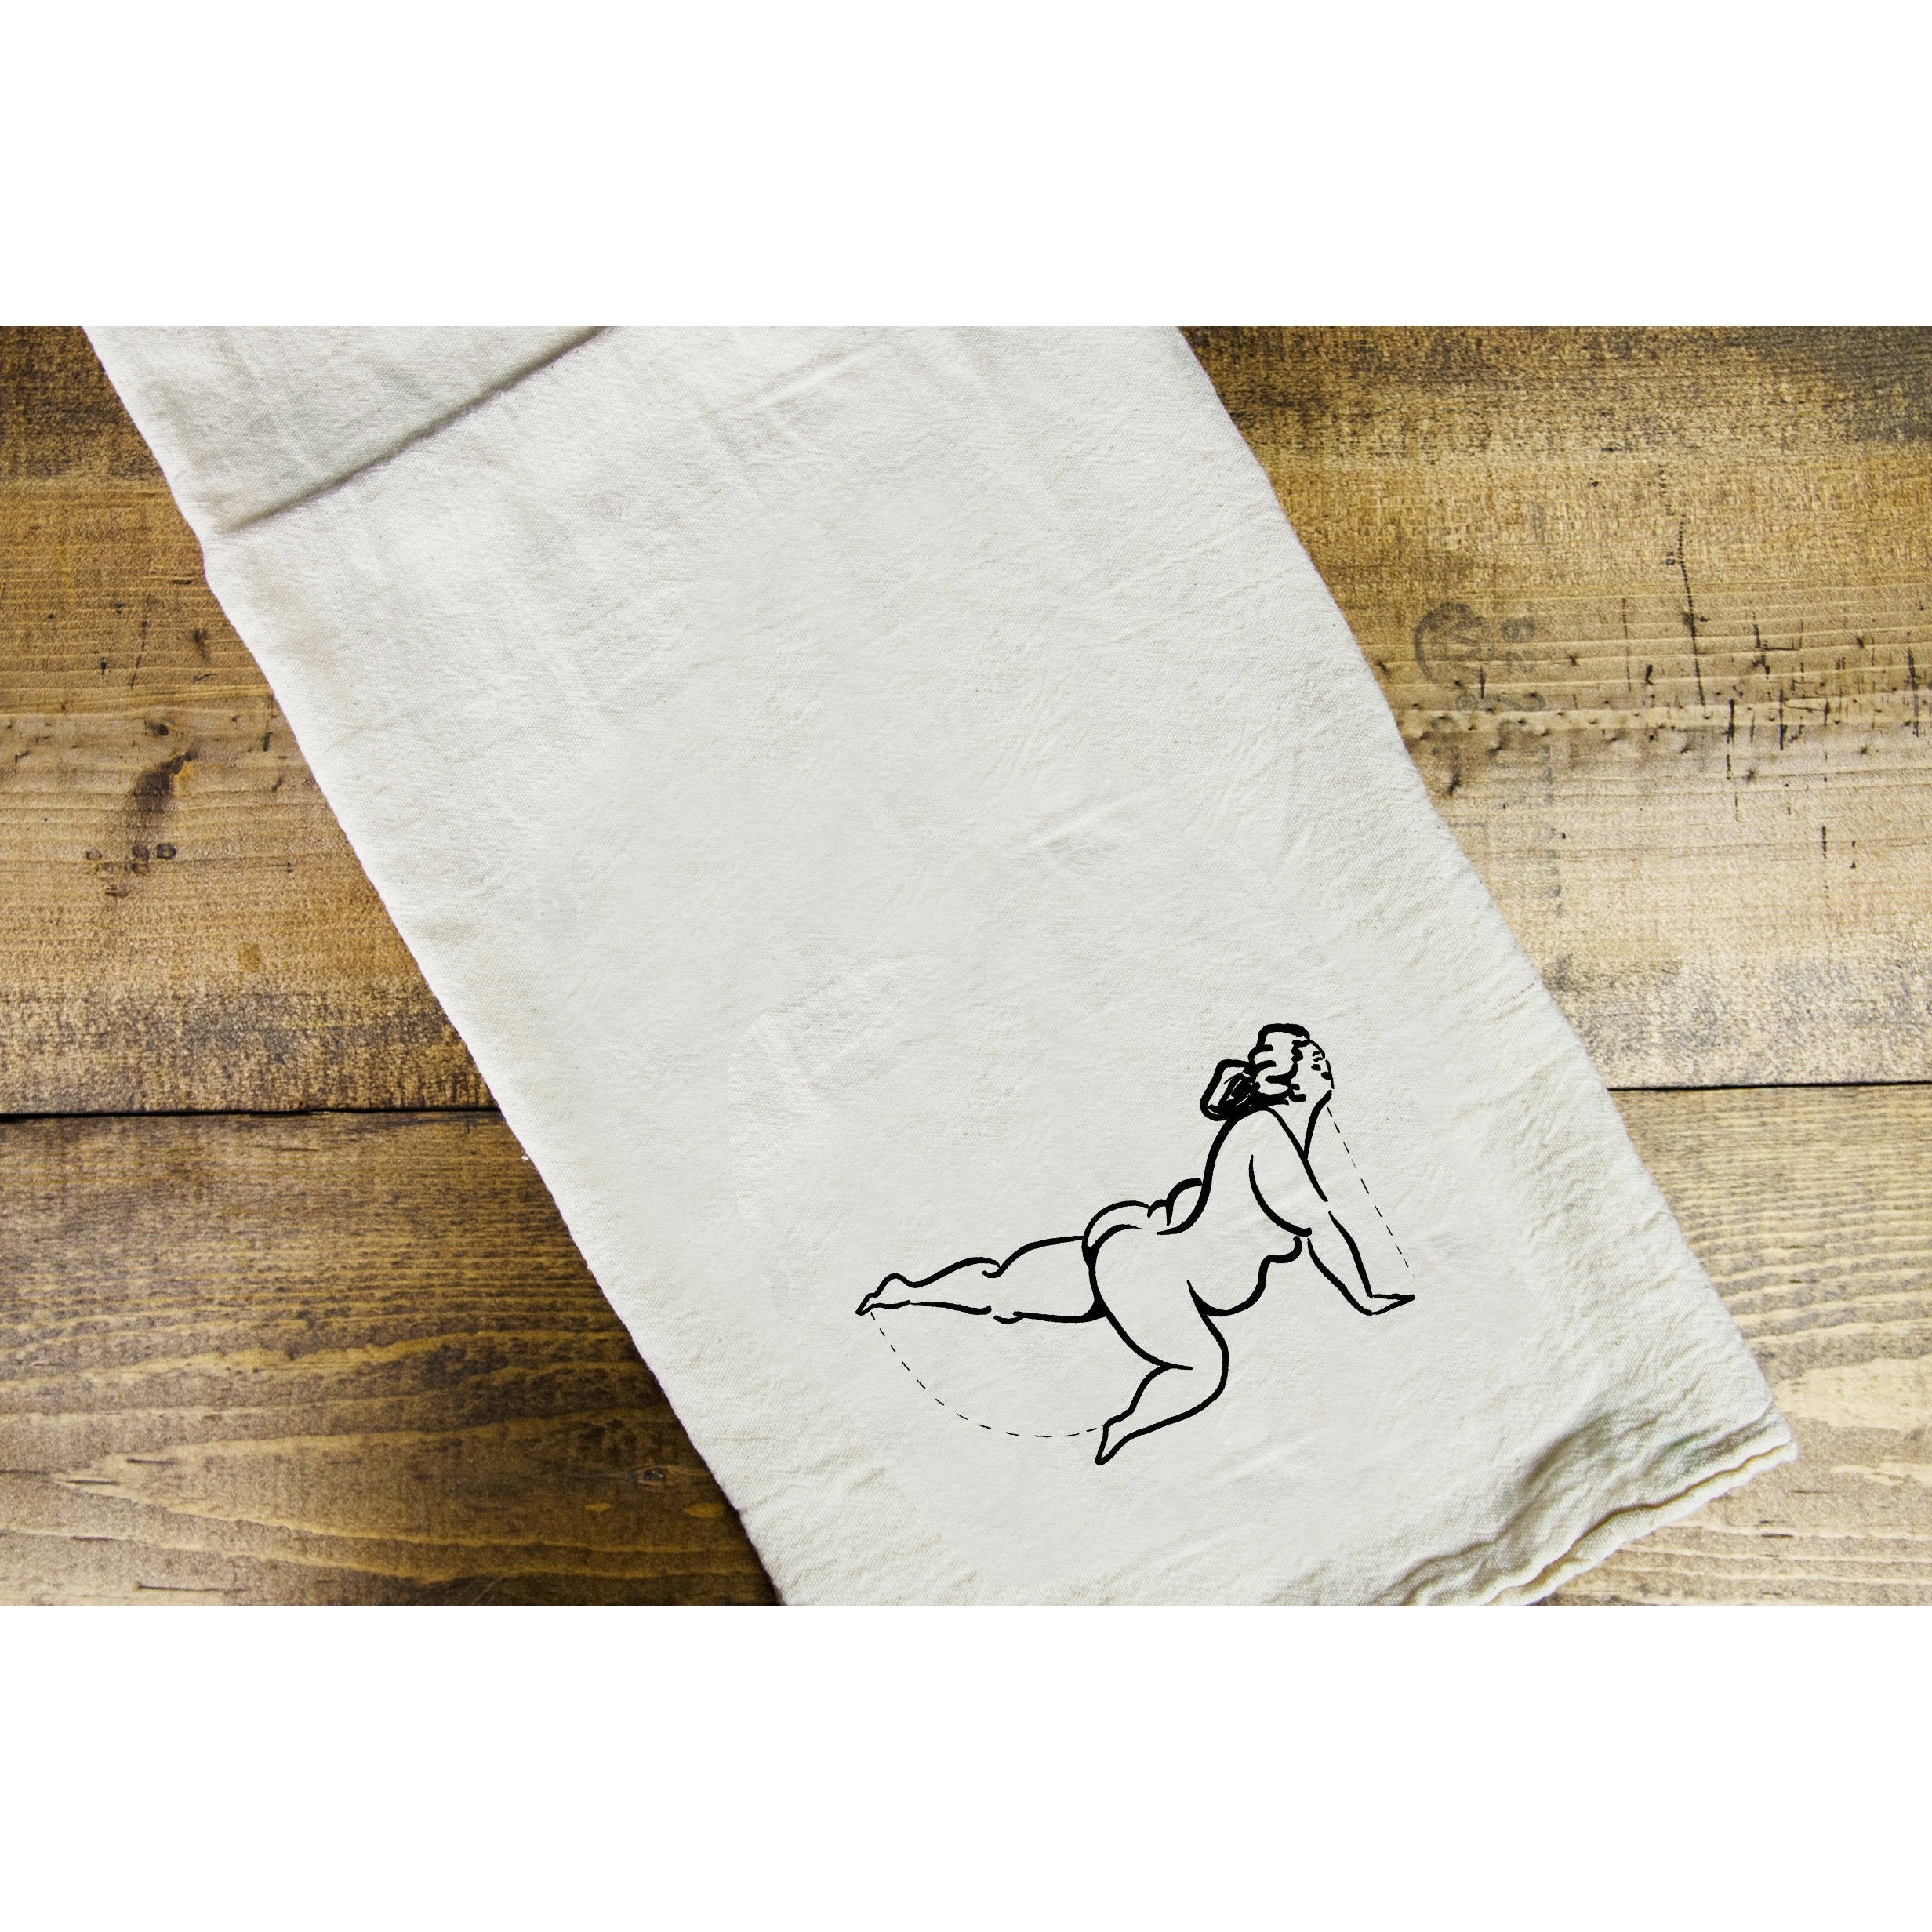 Yoga Lady 1 Dish Towel - Intrigue Ink Visit Bozeman, Unique Shopping Boutique in Montana, Work from Home Clothes for Women